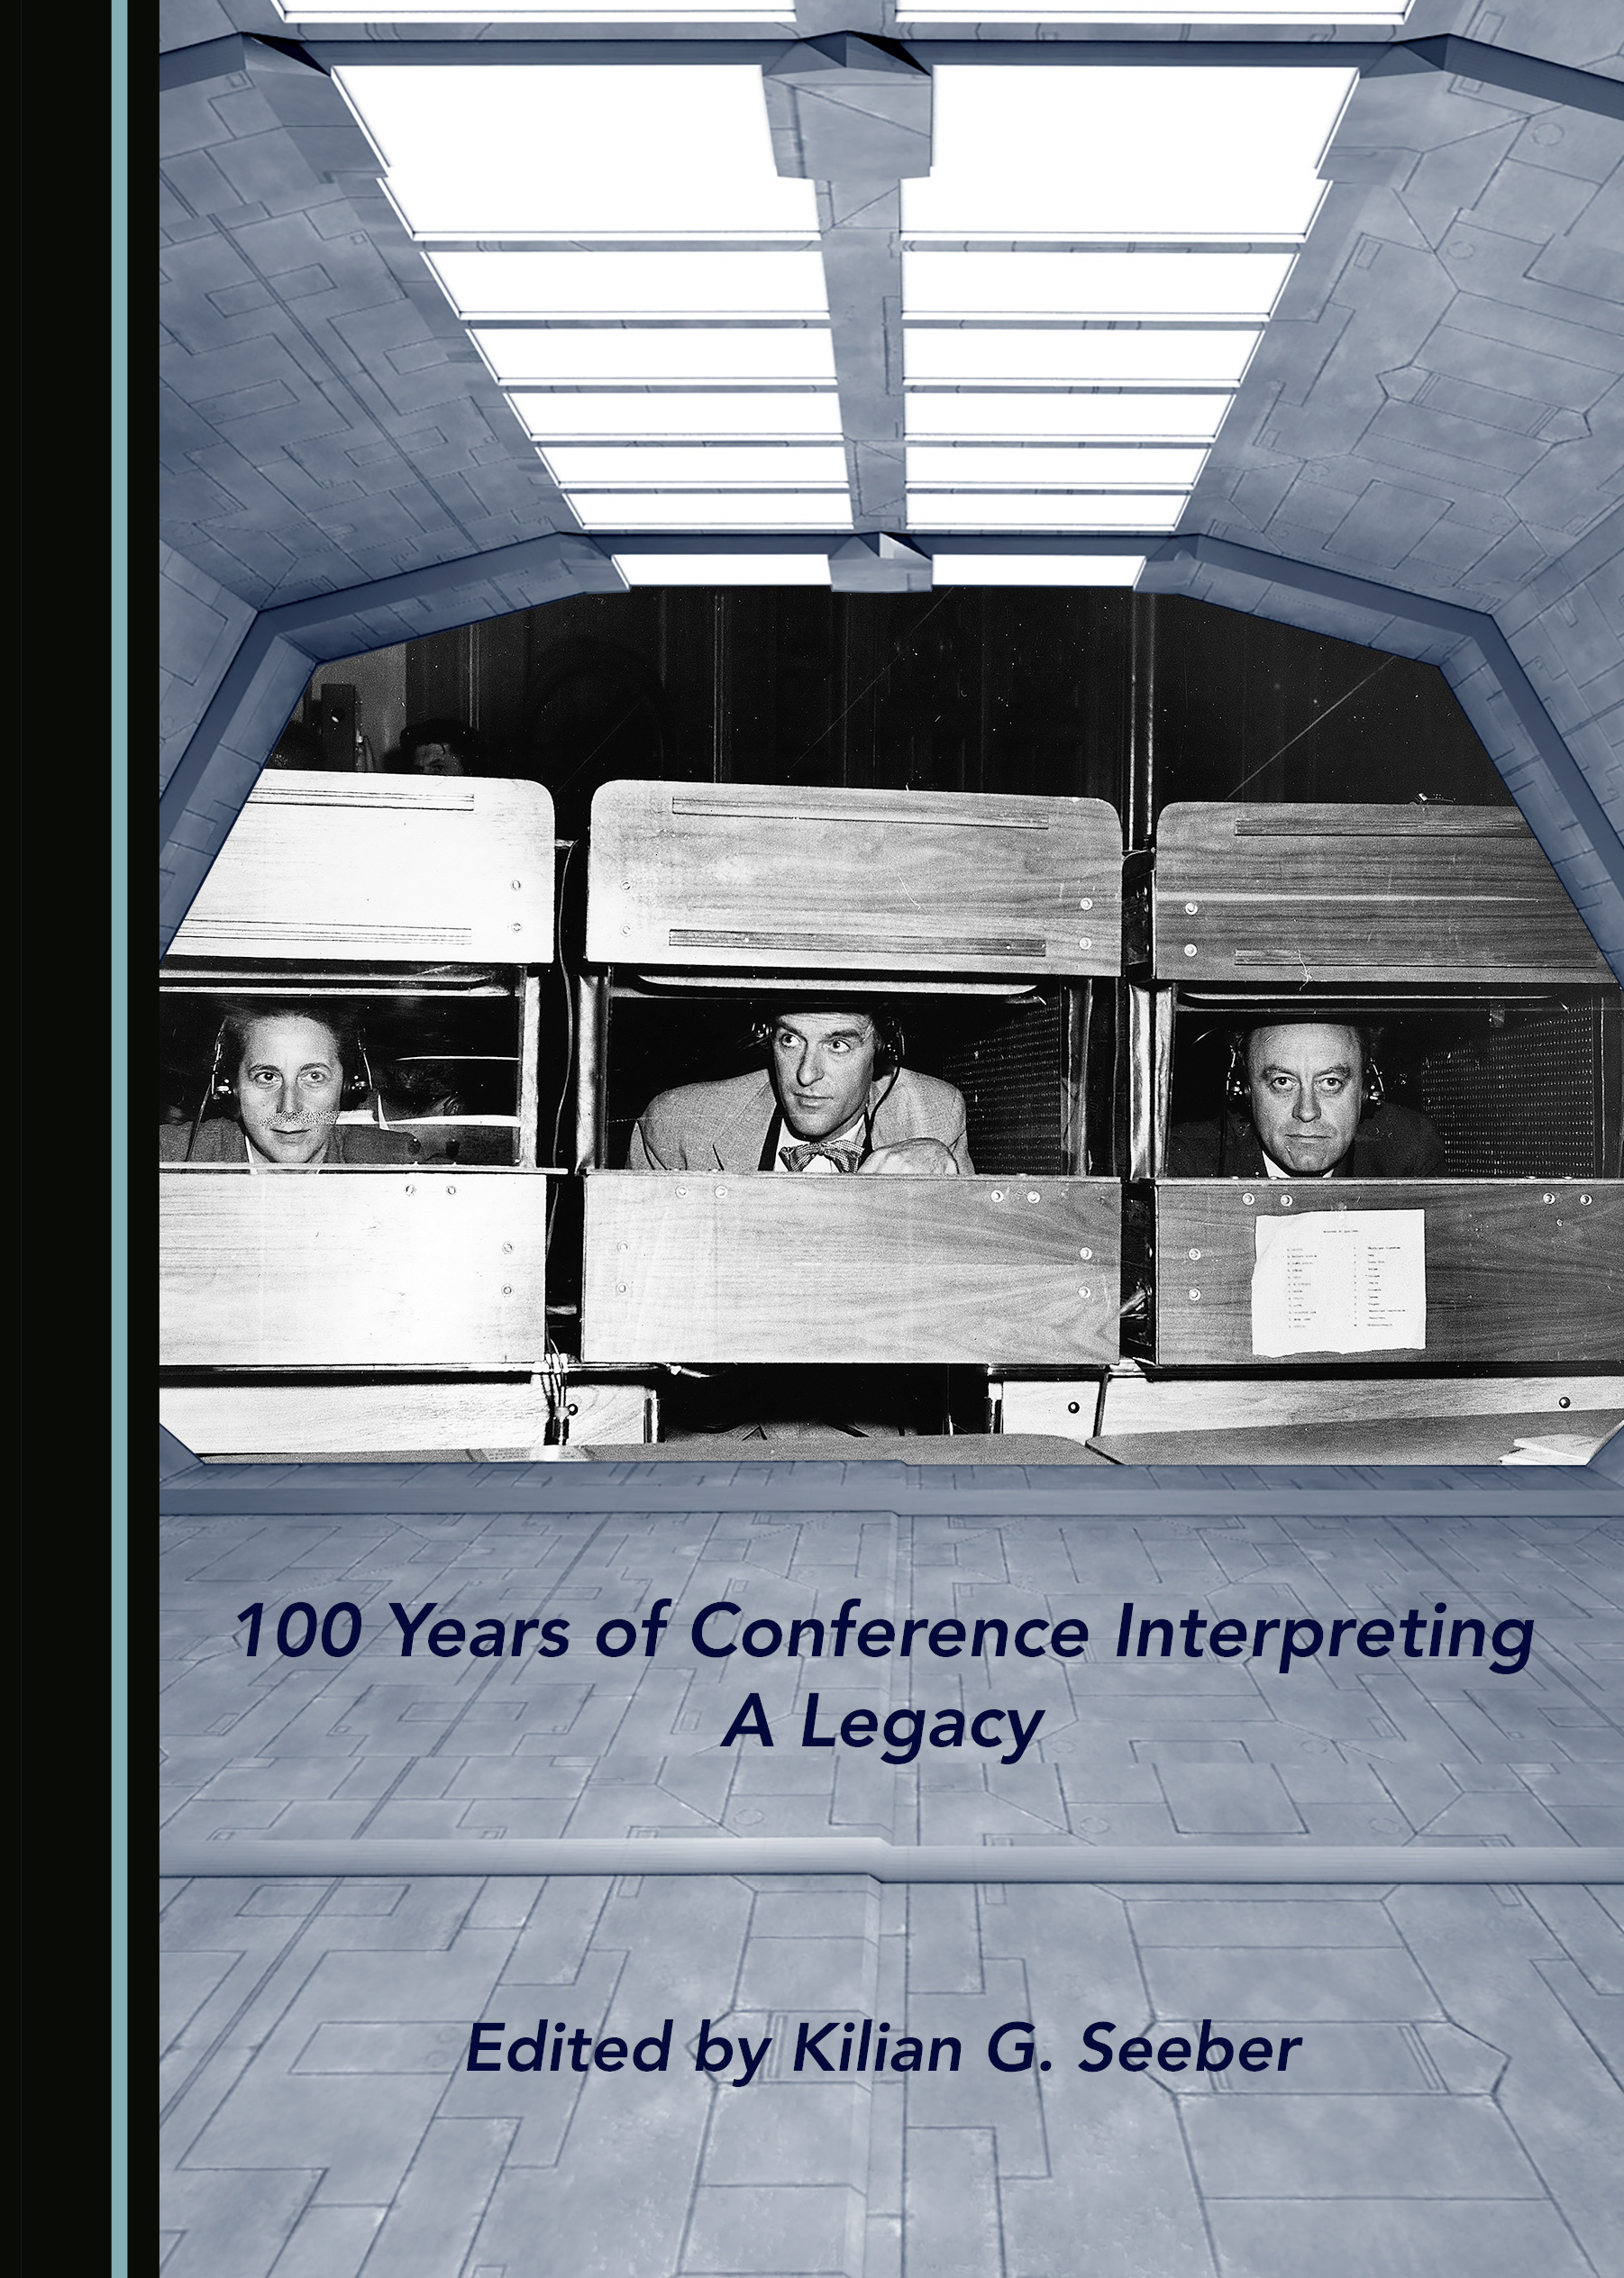 100 Years of Conference Interpreting: A Legacy